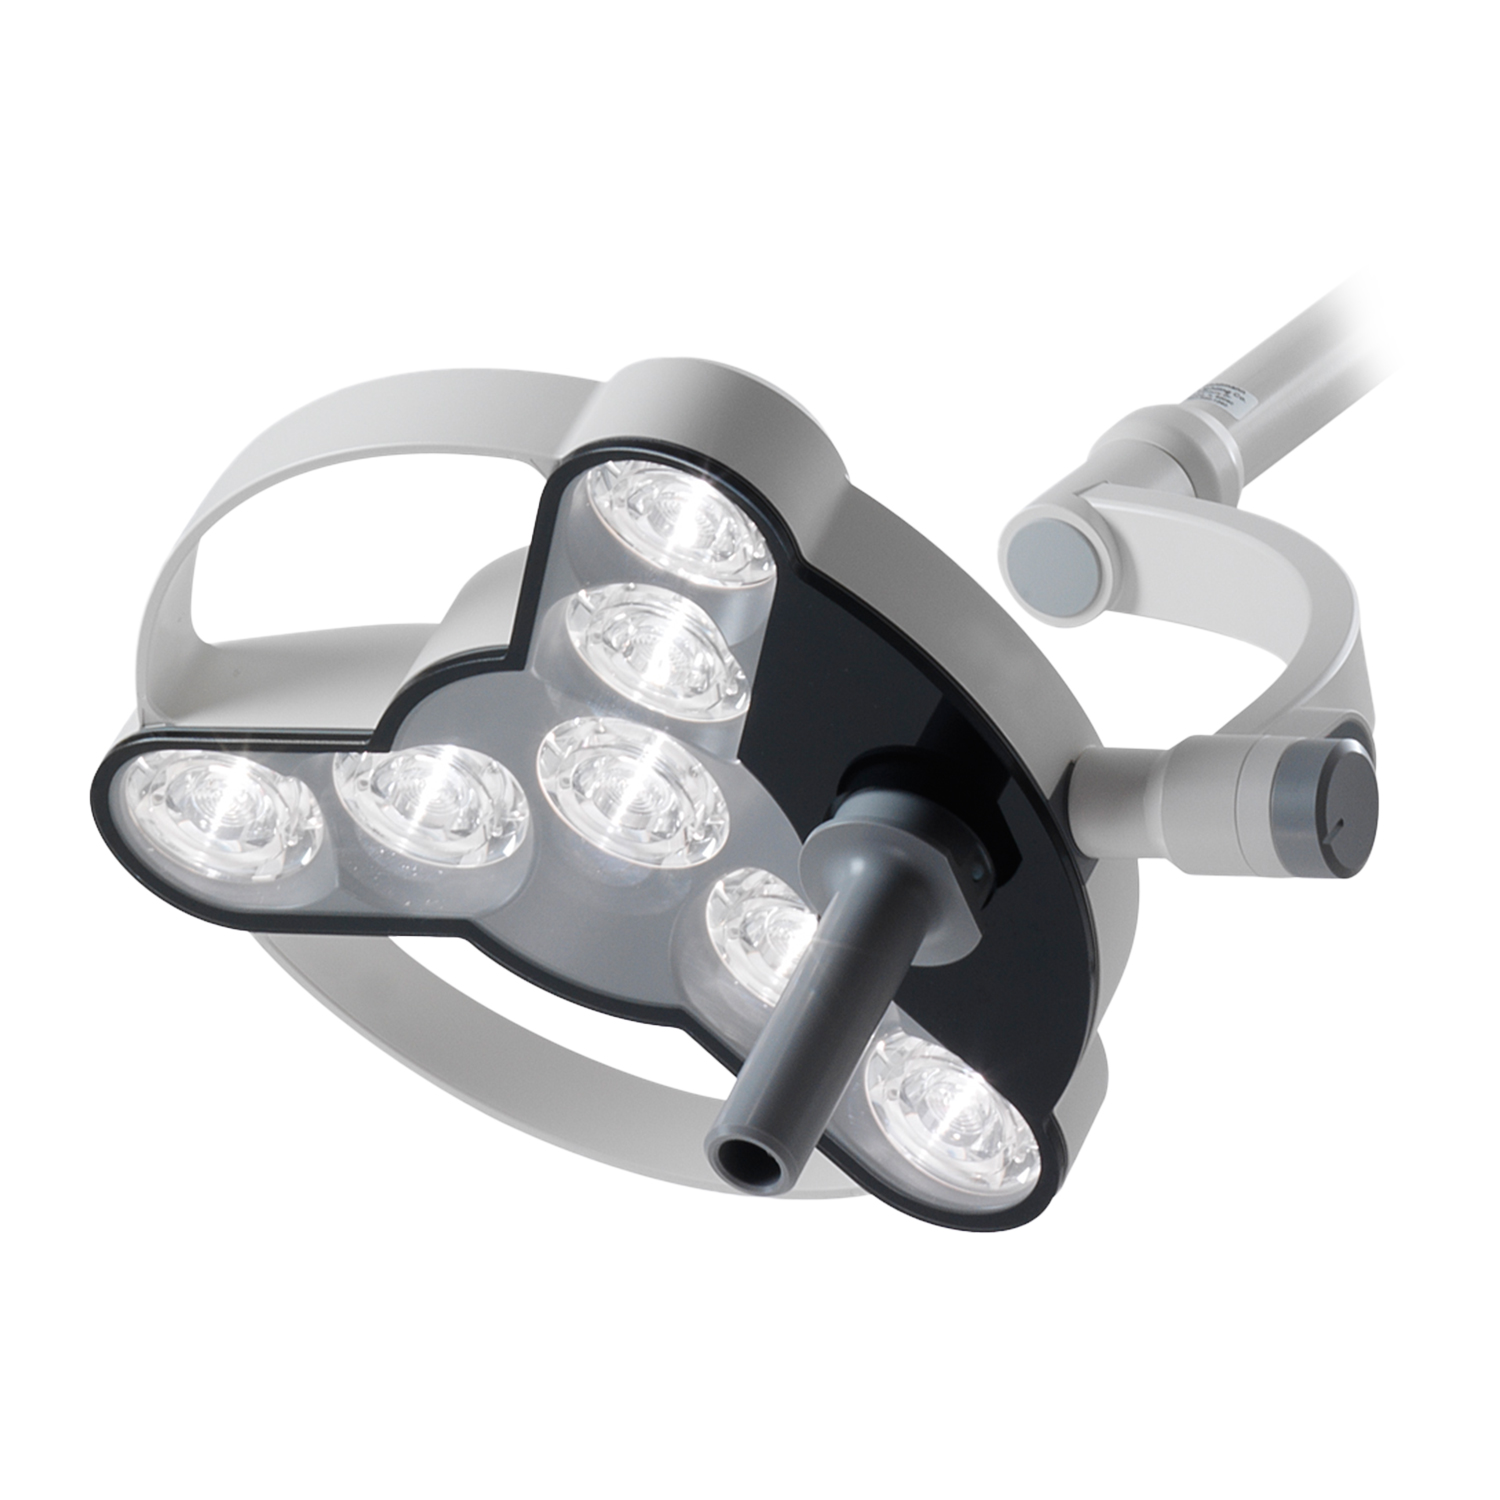 DRE Vision T3 LED Surgery Light